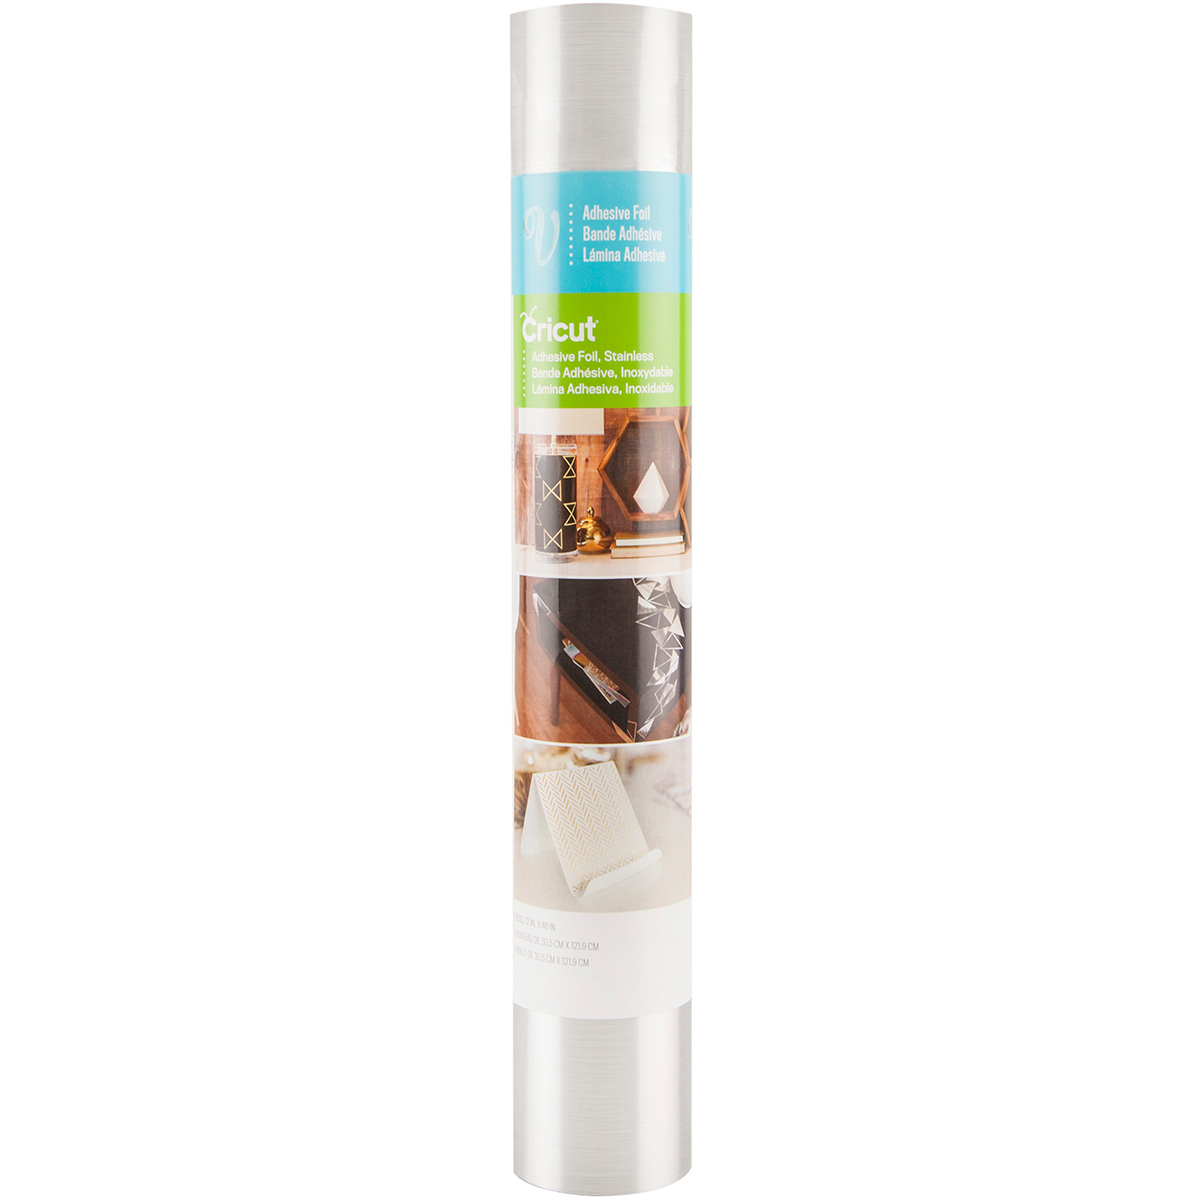 Cricut Adhesive Foil 12X48 Roll-Stainless Silver